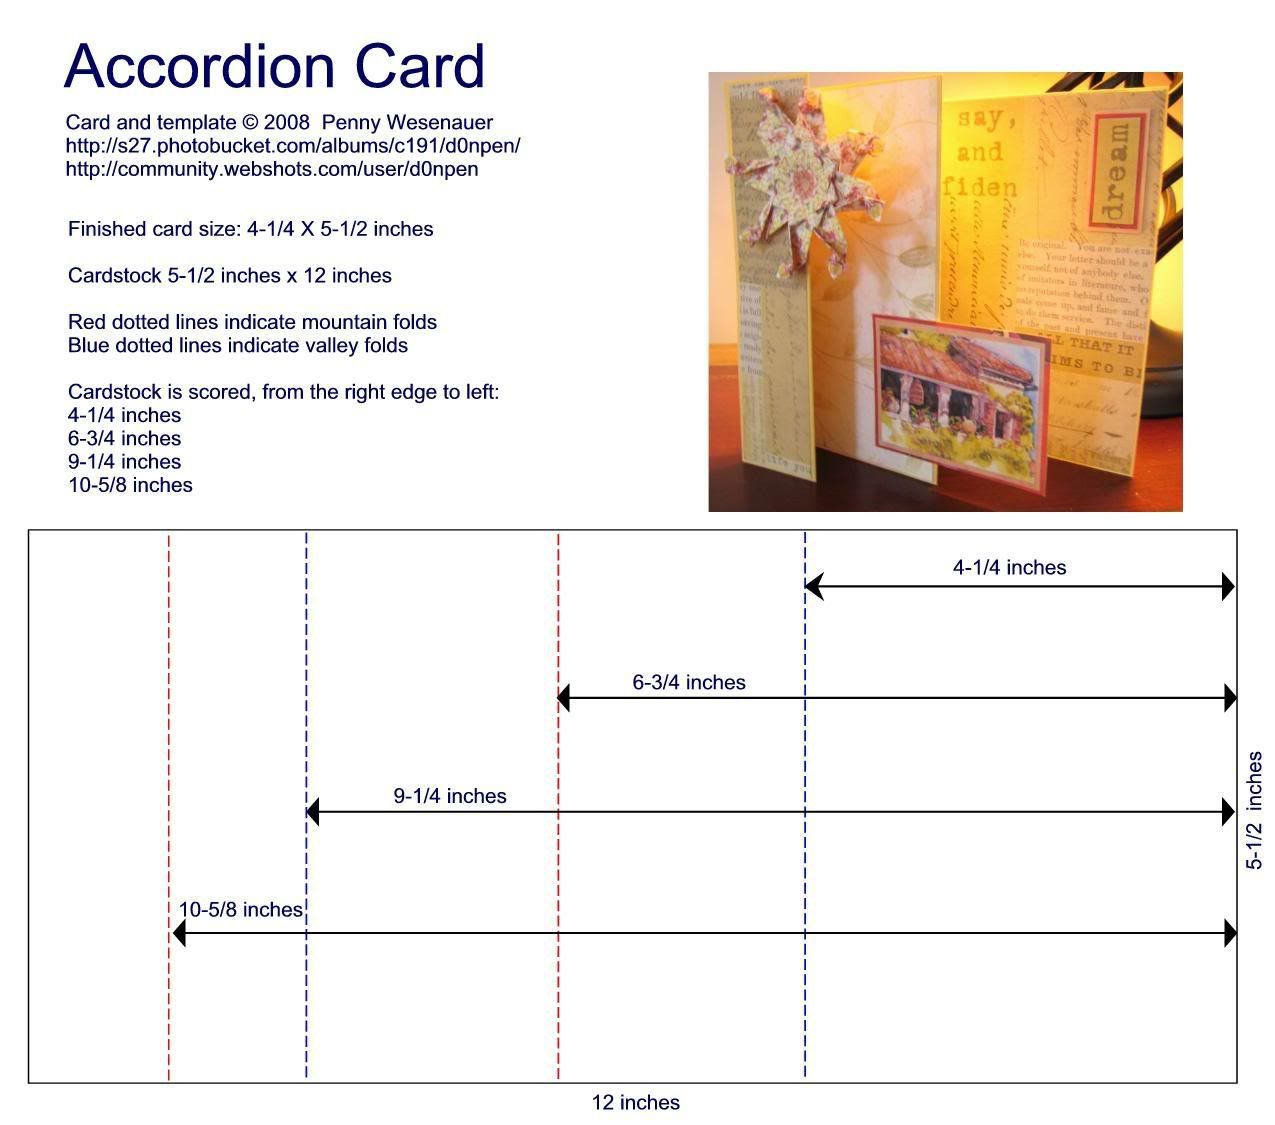 Accordion Card Template Pictures Images Photos Photobucket Accordion Cards Card Templates Card Making Tutorials